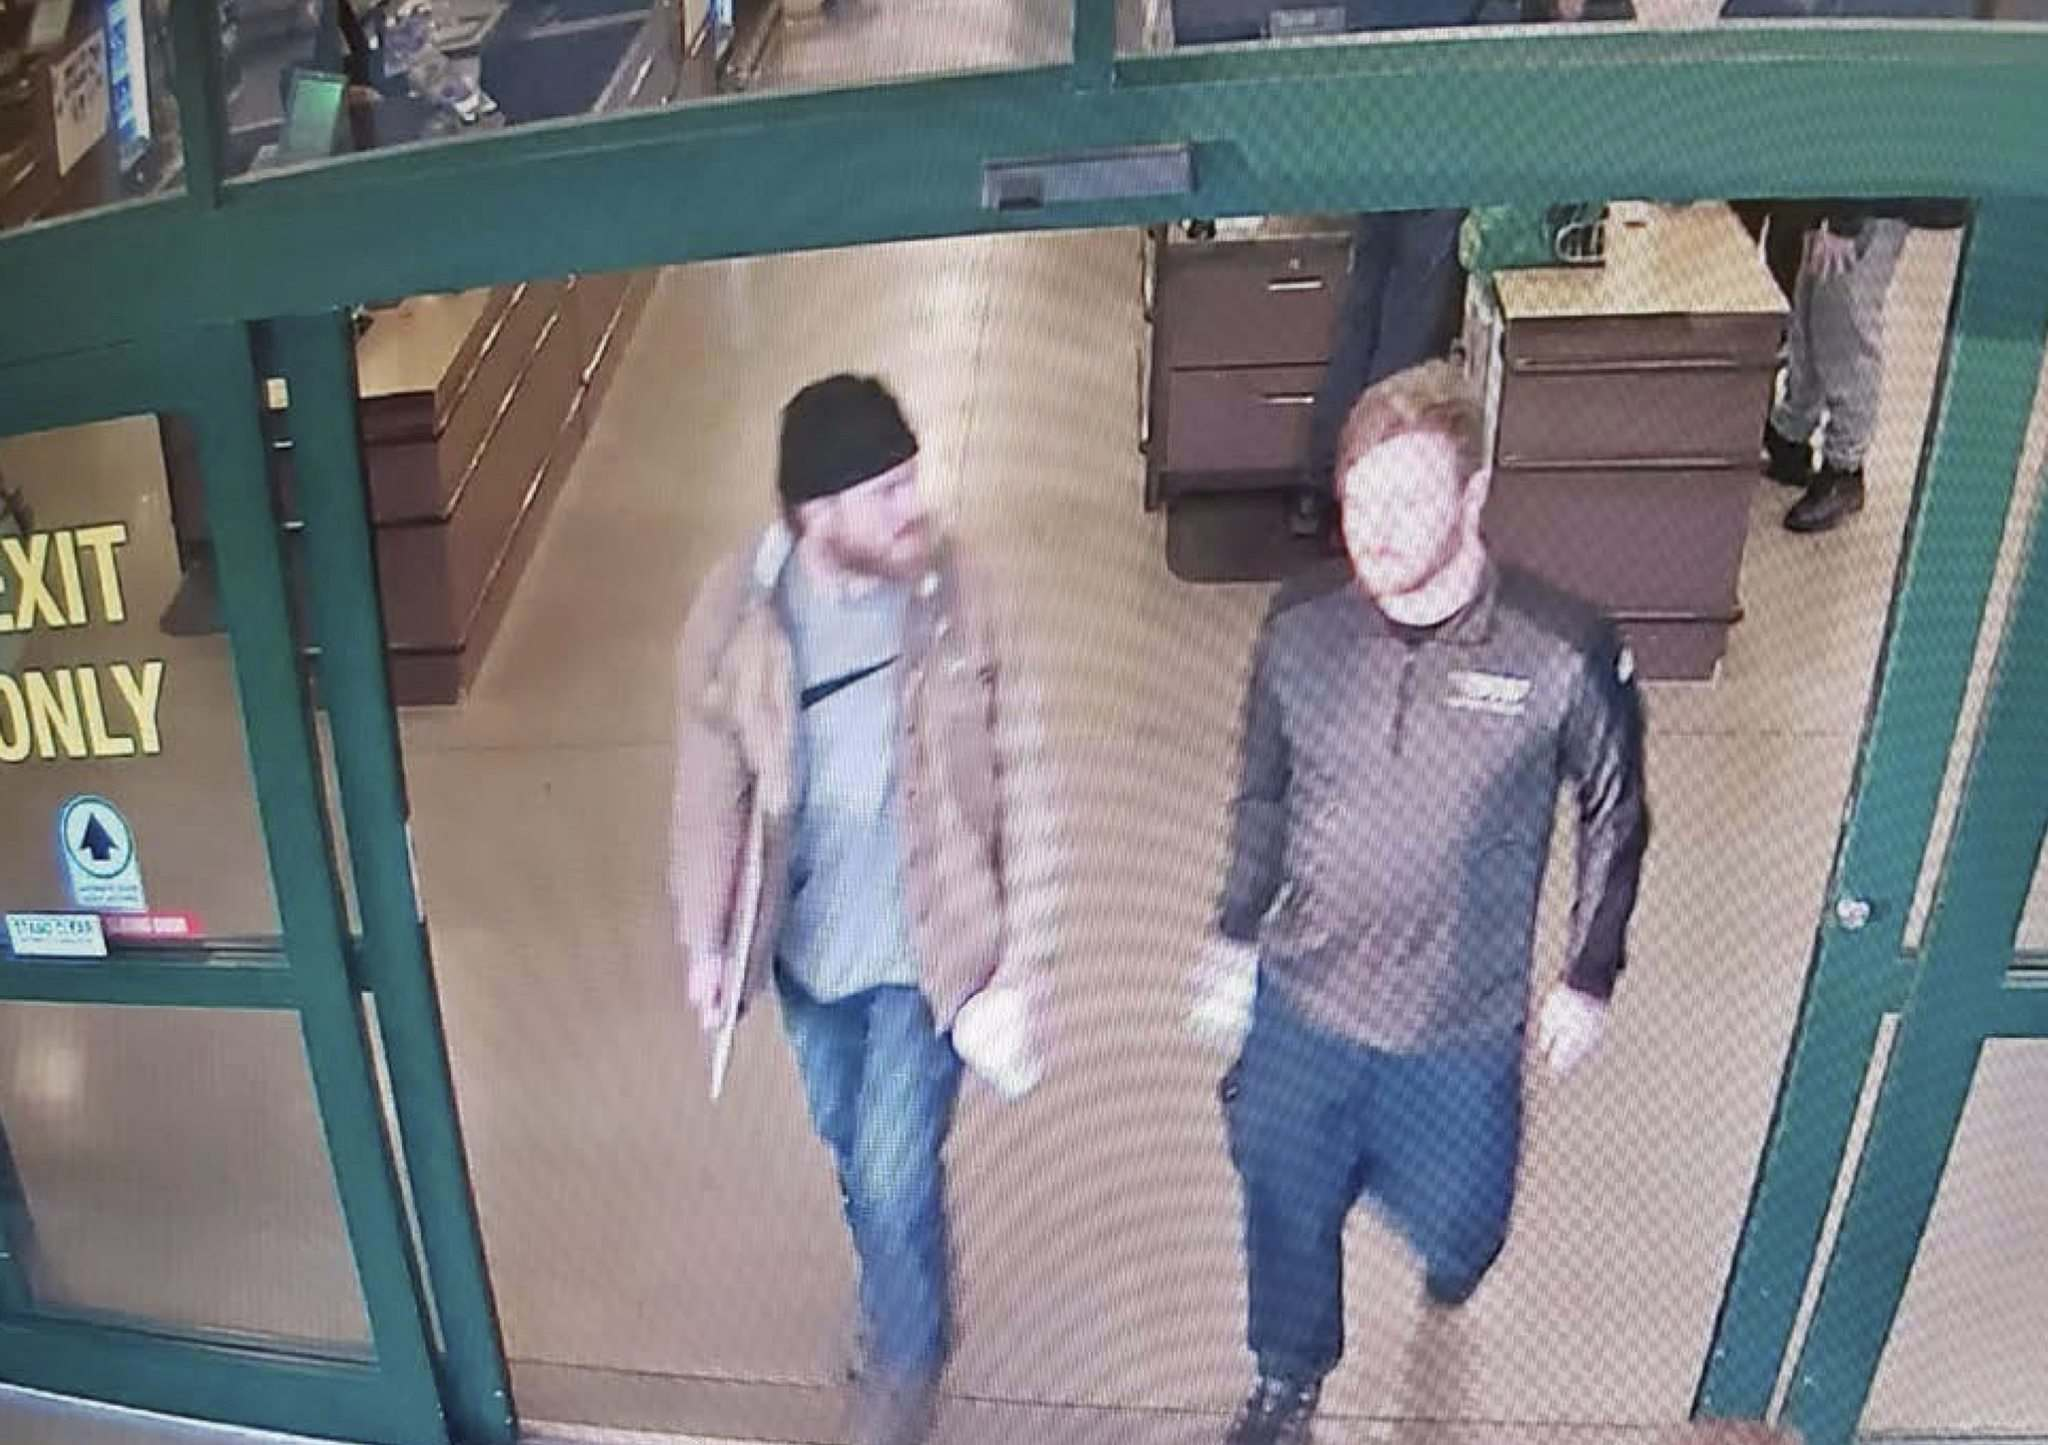 From court documents: On Jan. 1, at a store in Delaware, Lemley and  Mathews (left) purchased approximately 150 rounds of 5.56 mm ammunition, as well as paper shooting targets. (U.S Attorney Detention Motion)